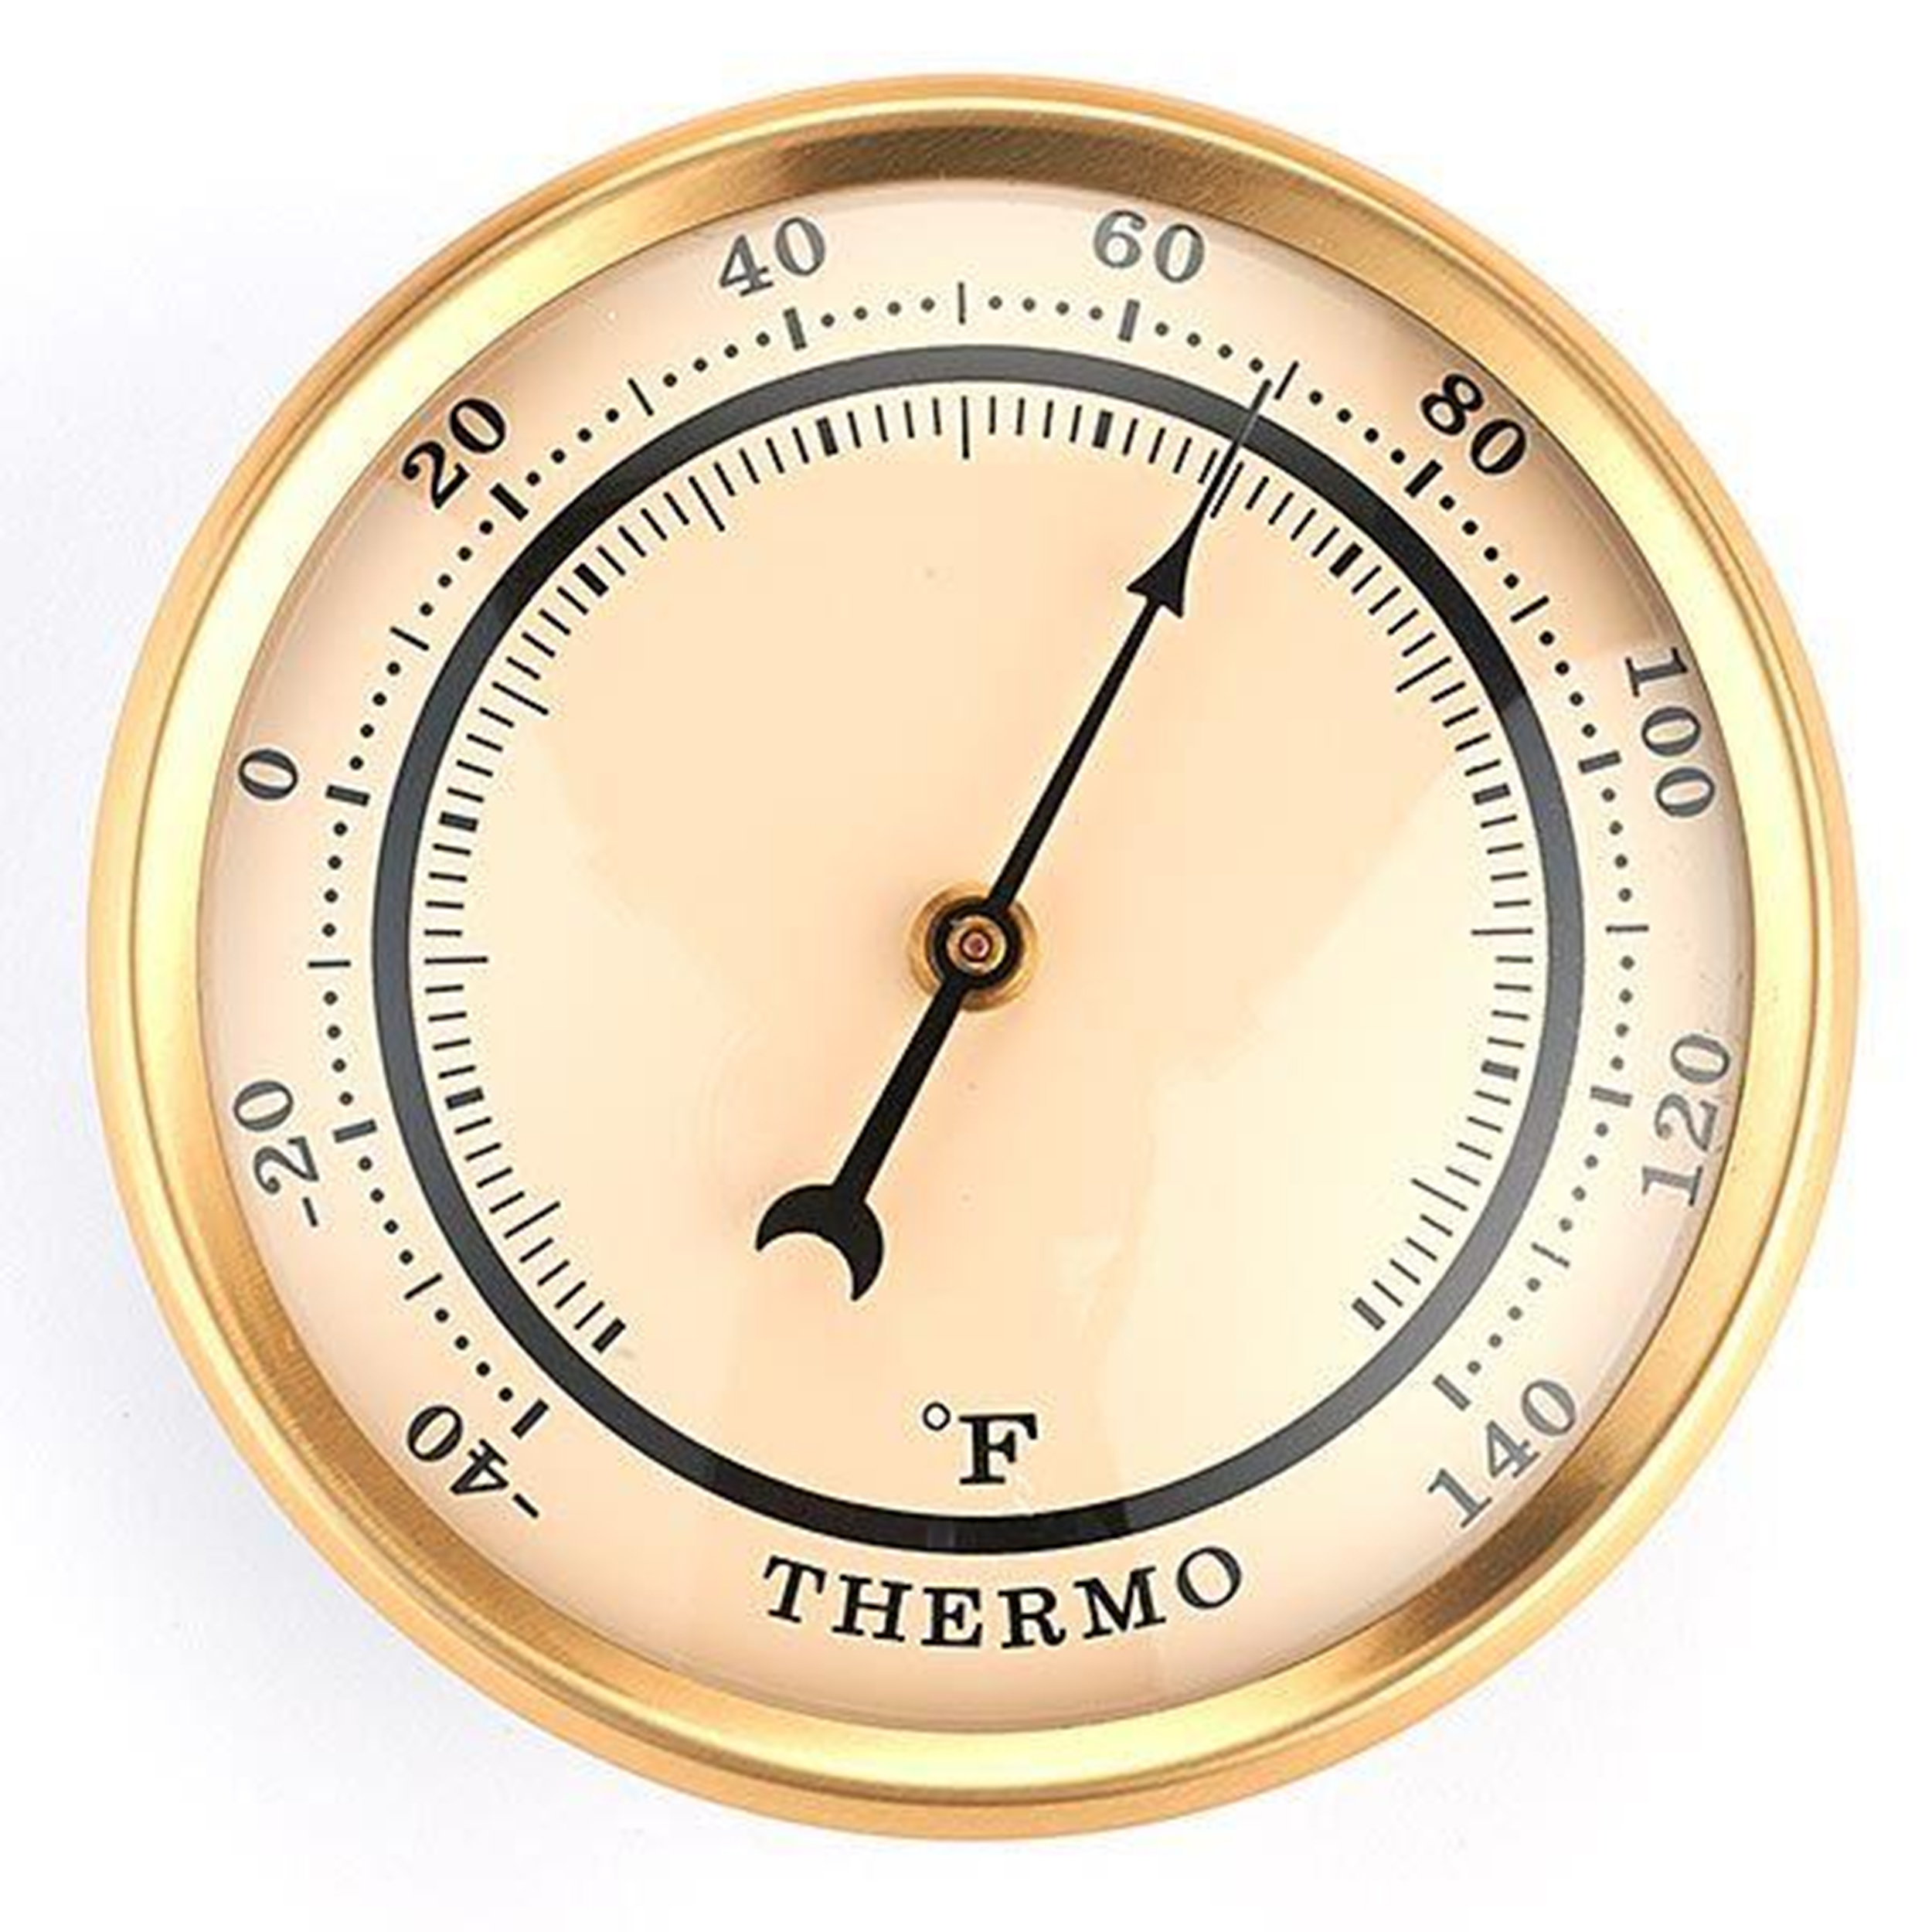 Thermometer w/Ivory Dial and Brushed Gold Bezel